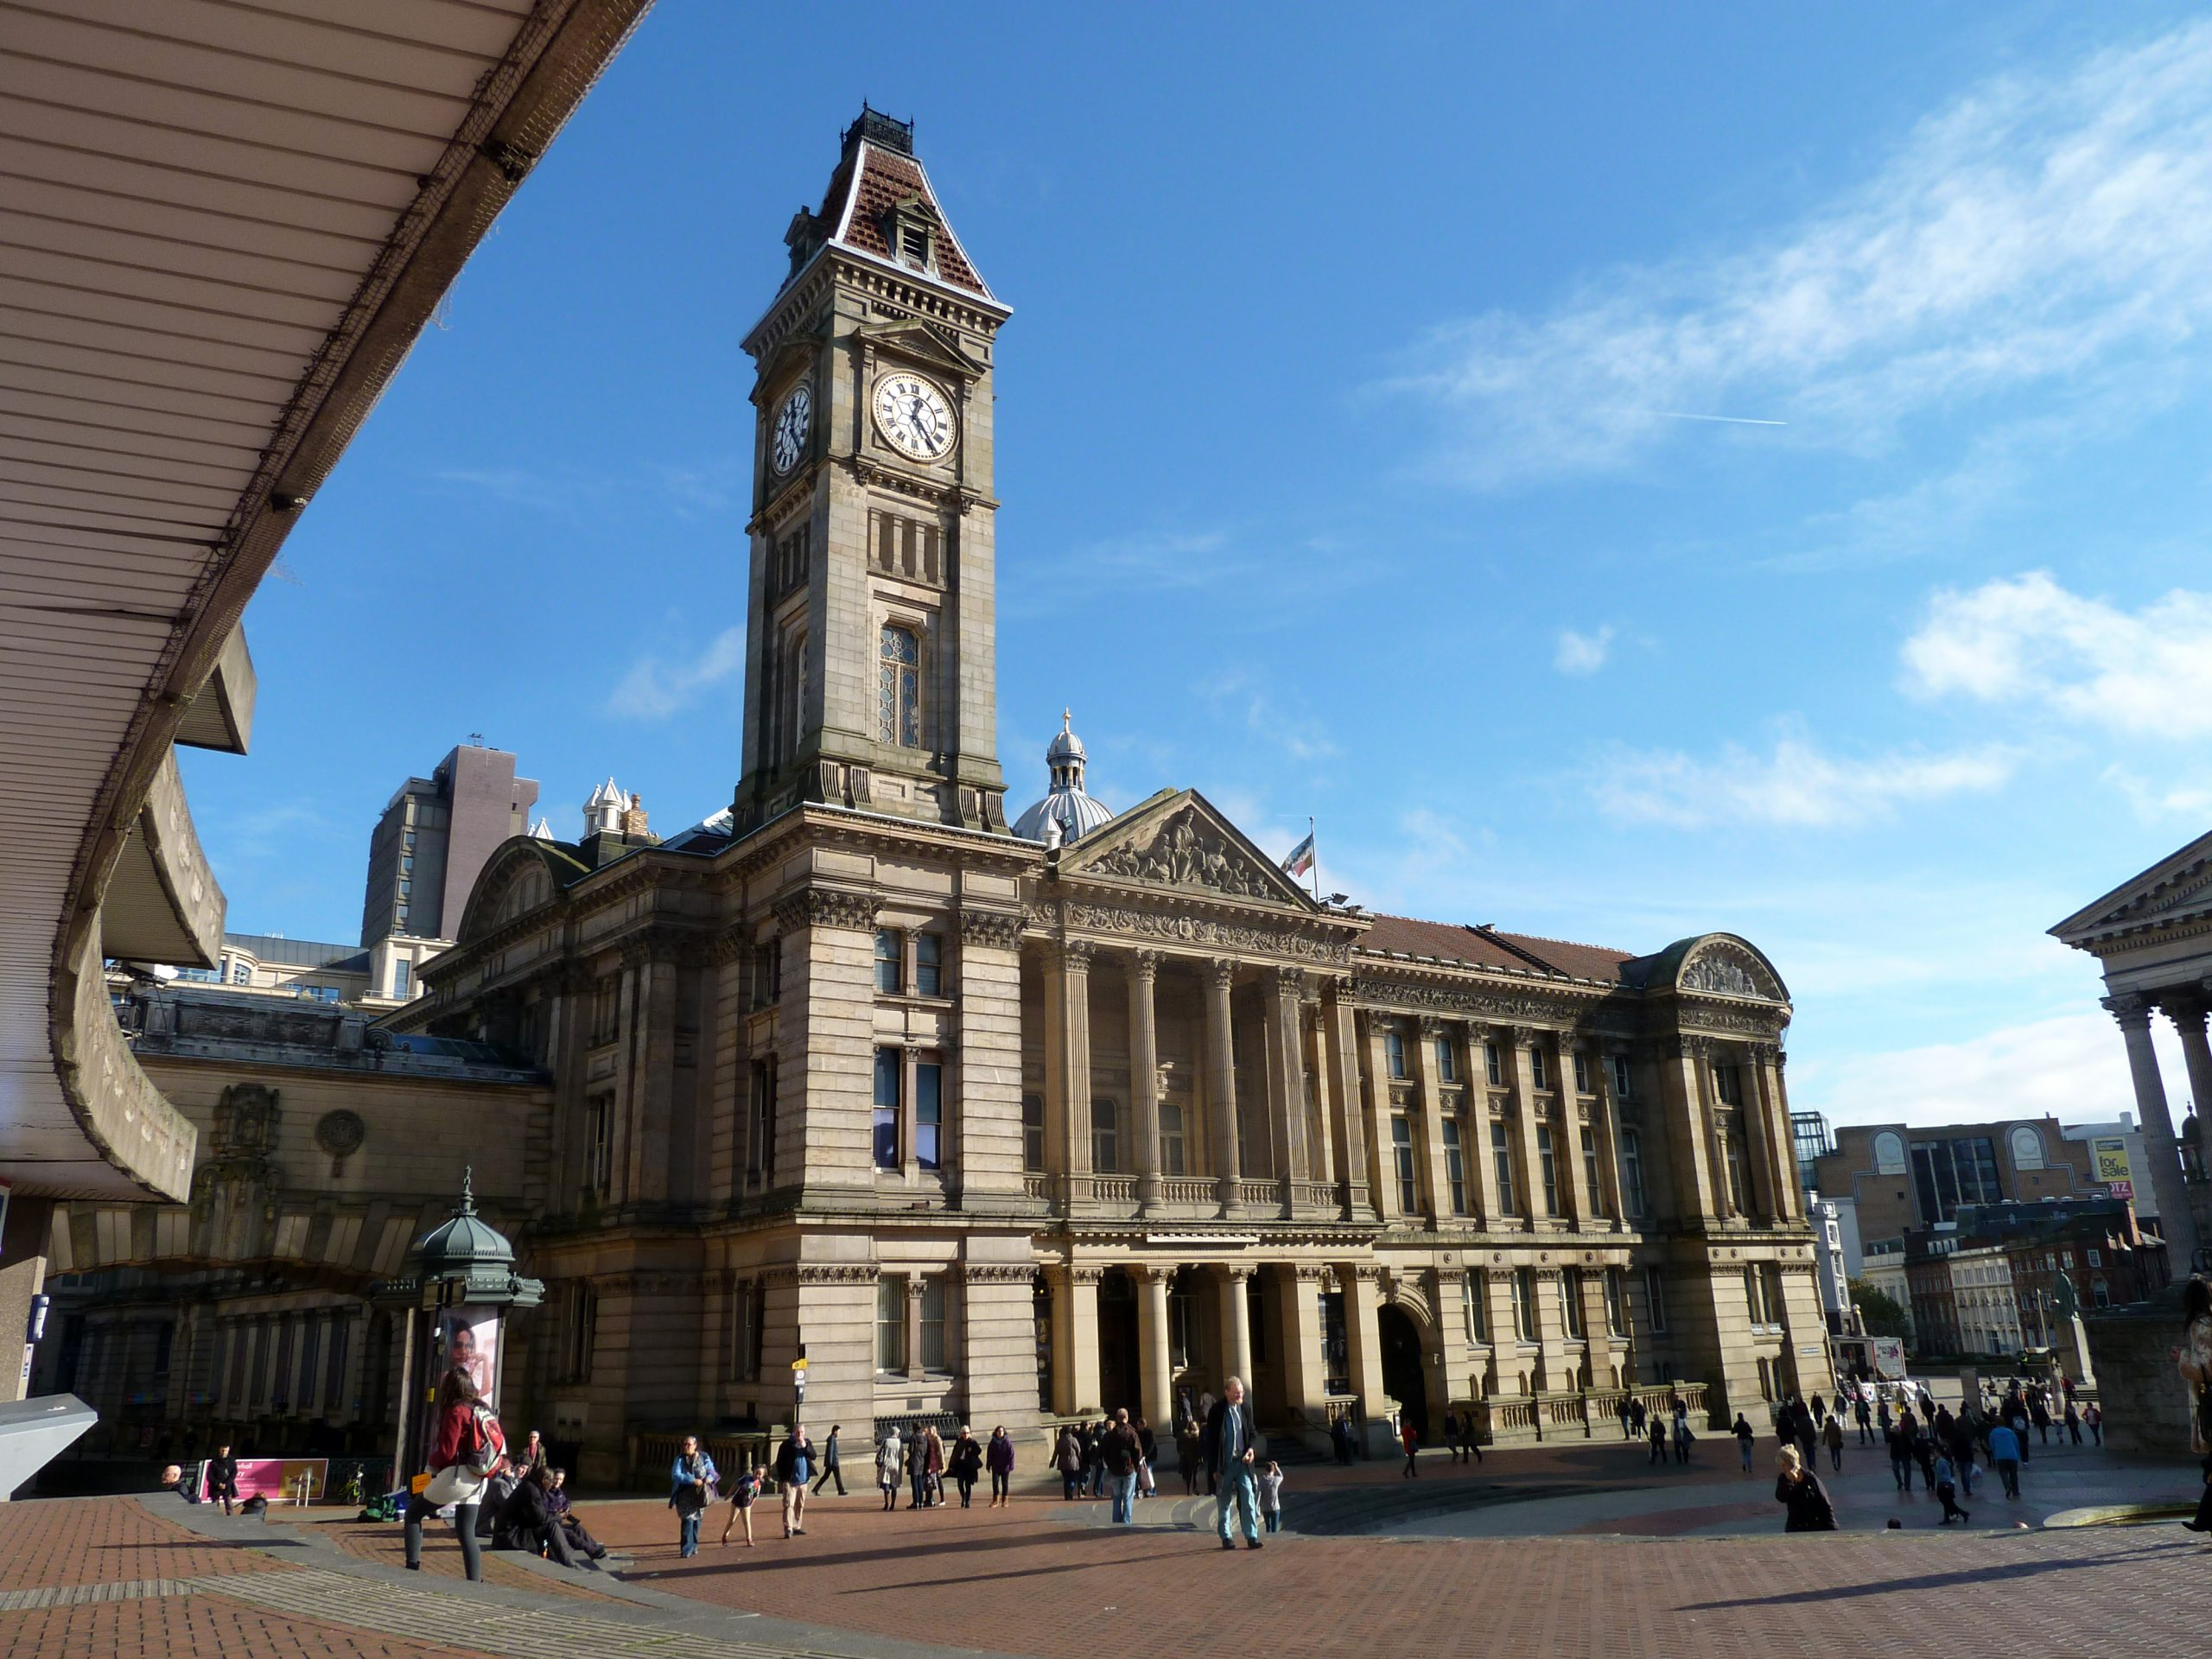 Birmingham Museum and Art Gallery, part of Birmingham Museums Trust which is currently consulting on redundancies.